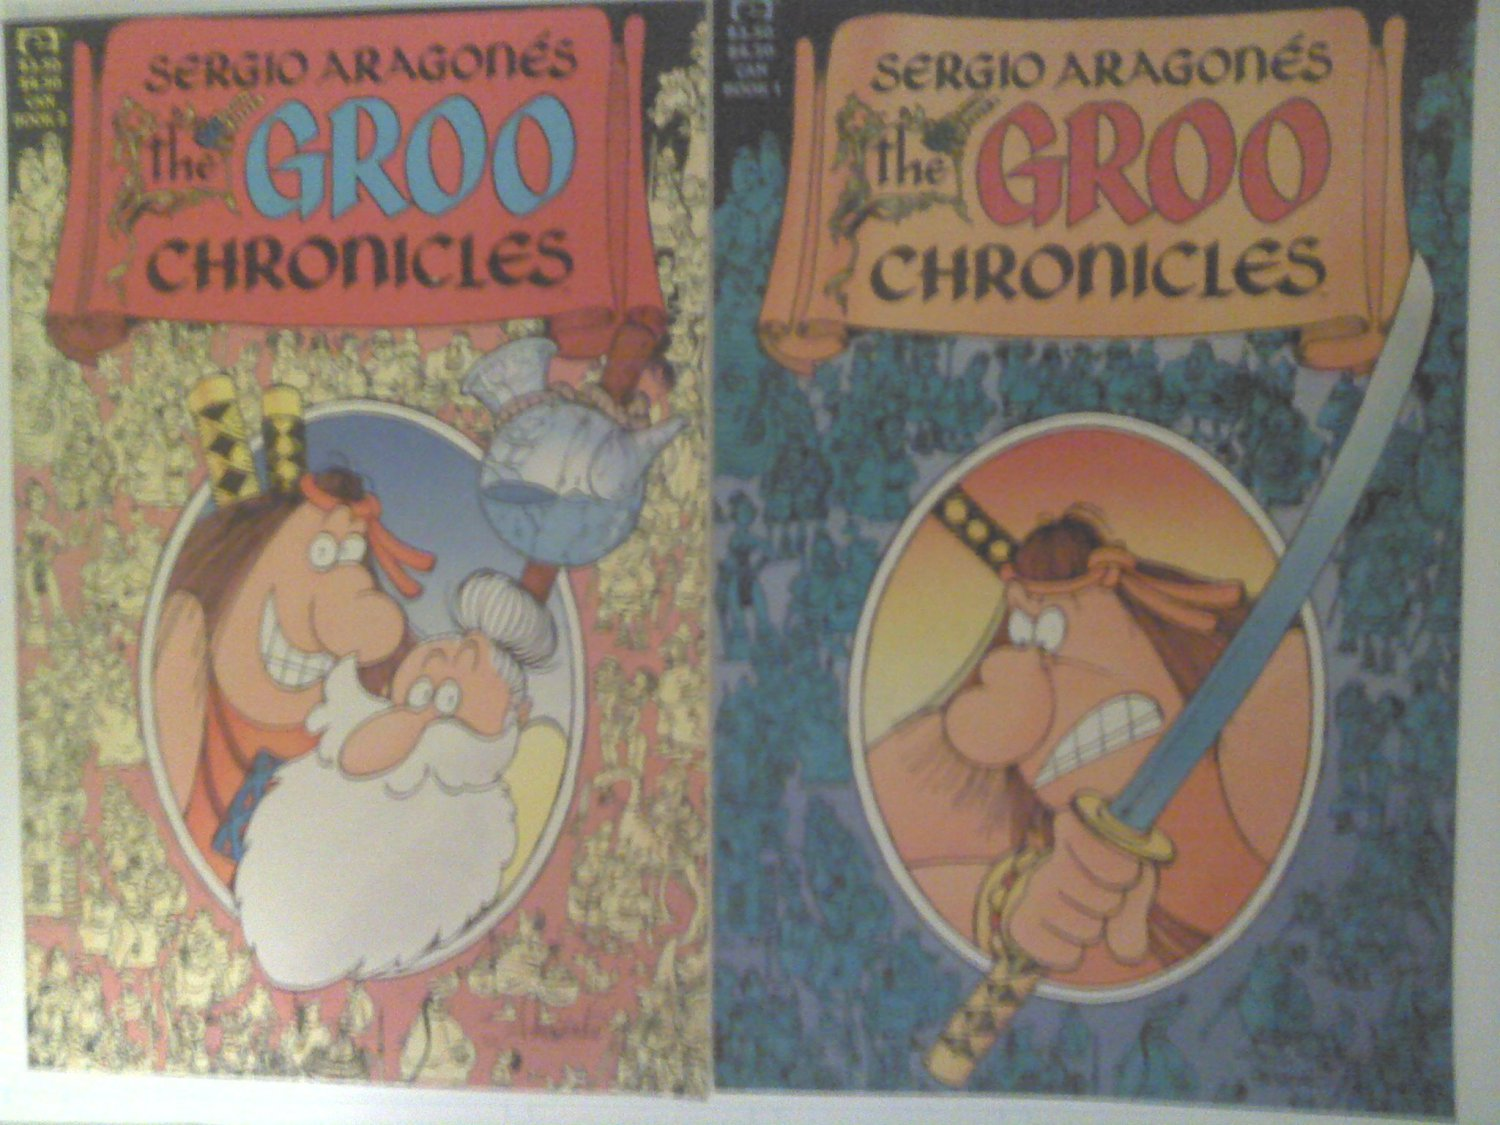 The Groo Chronicles #1 & #2 by Sergio Aragones Prestige Format